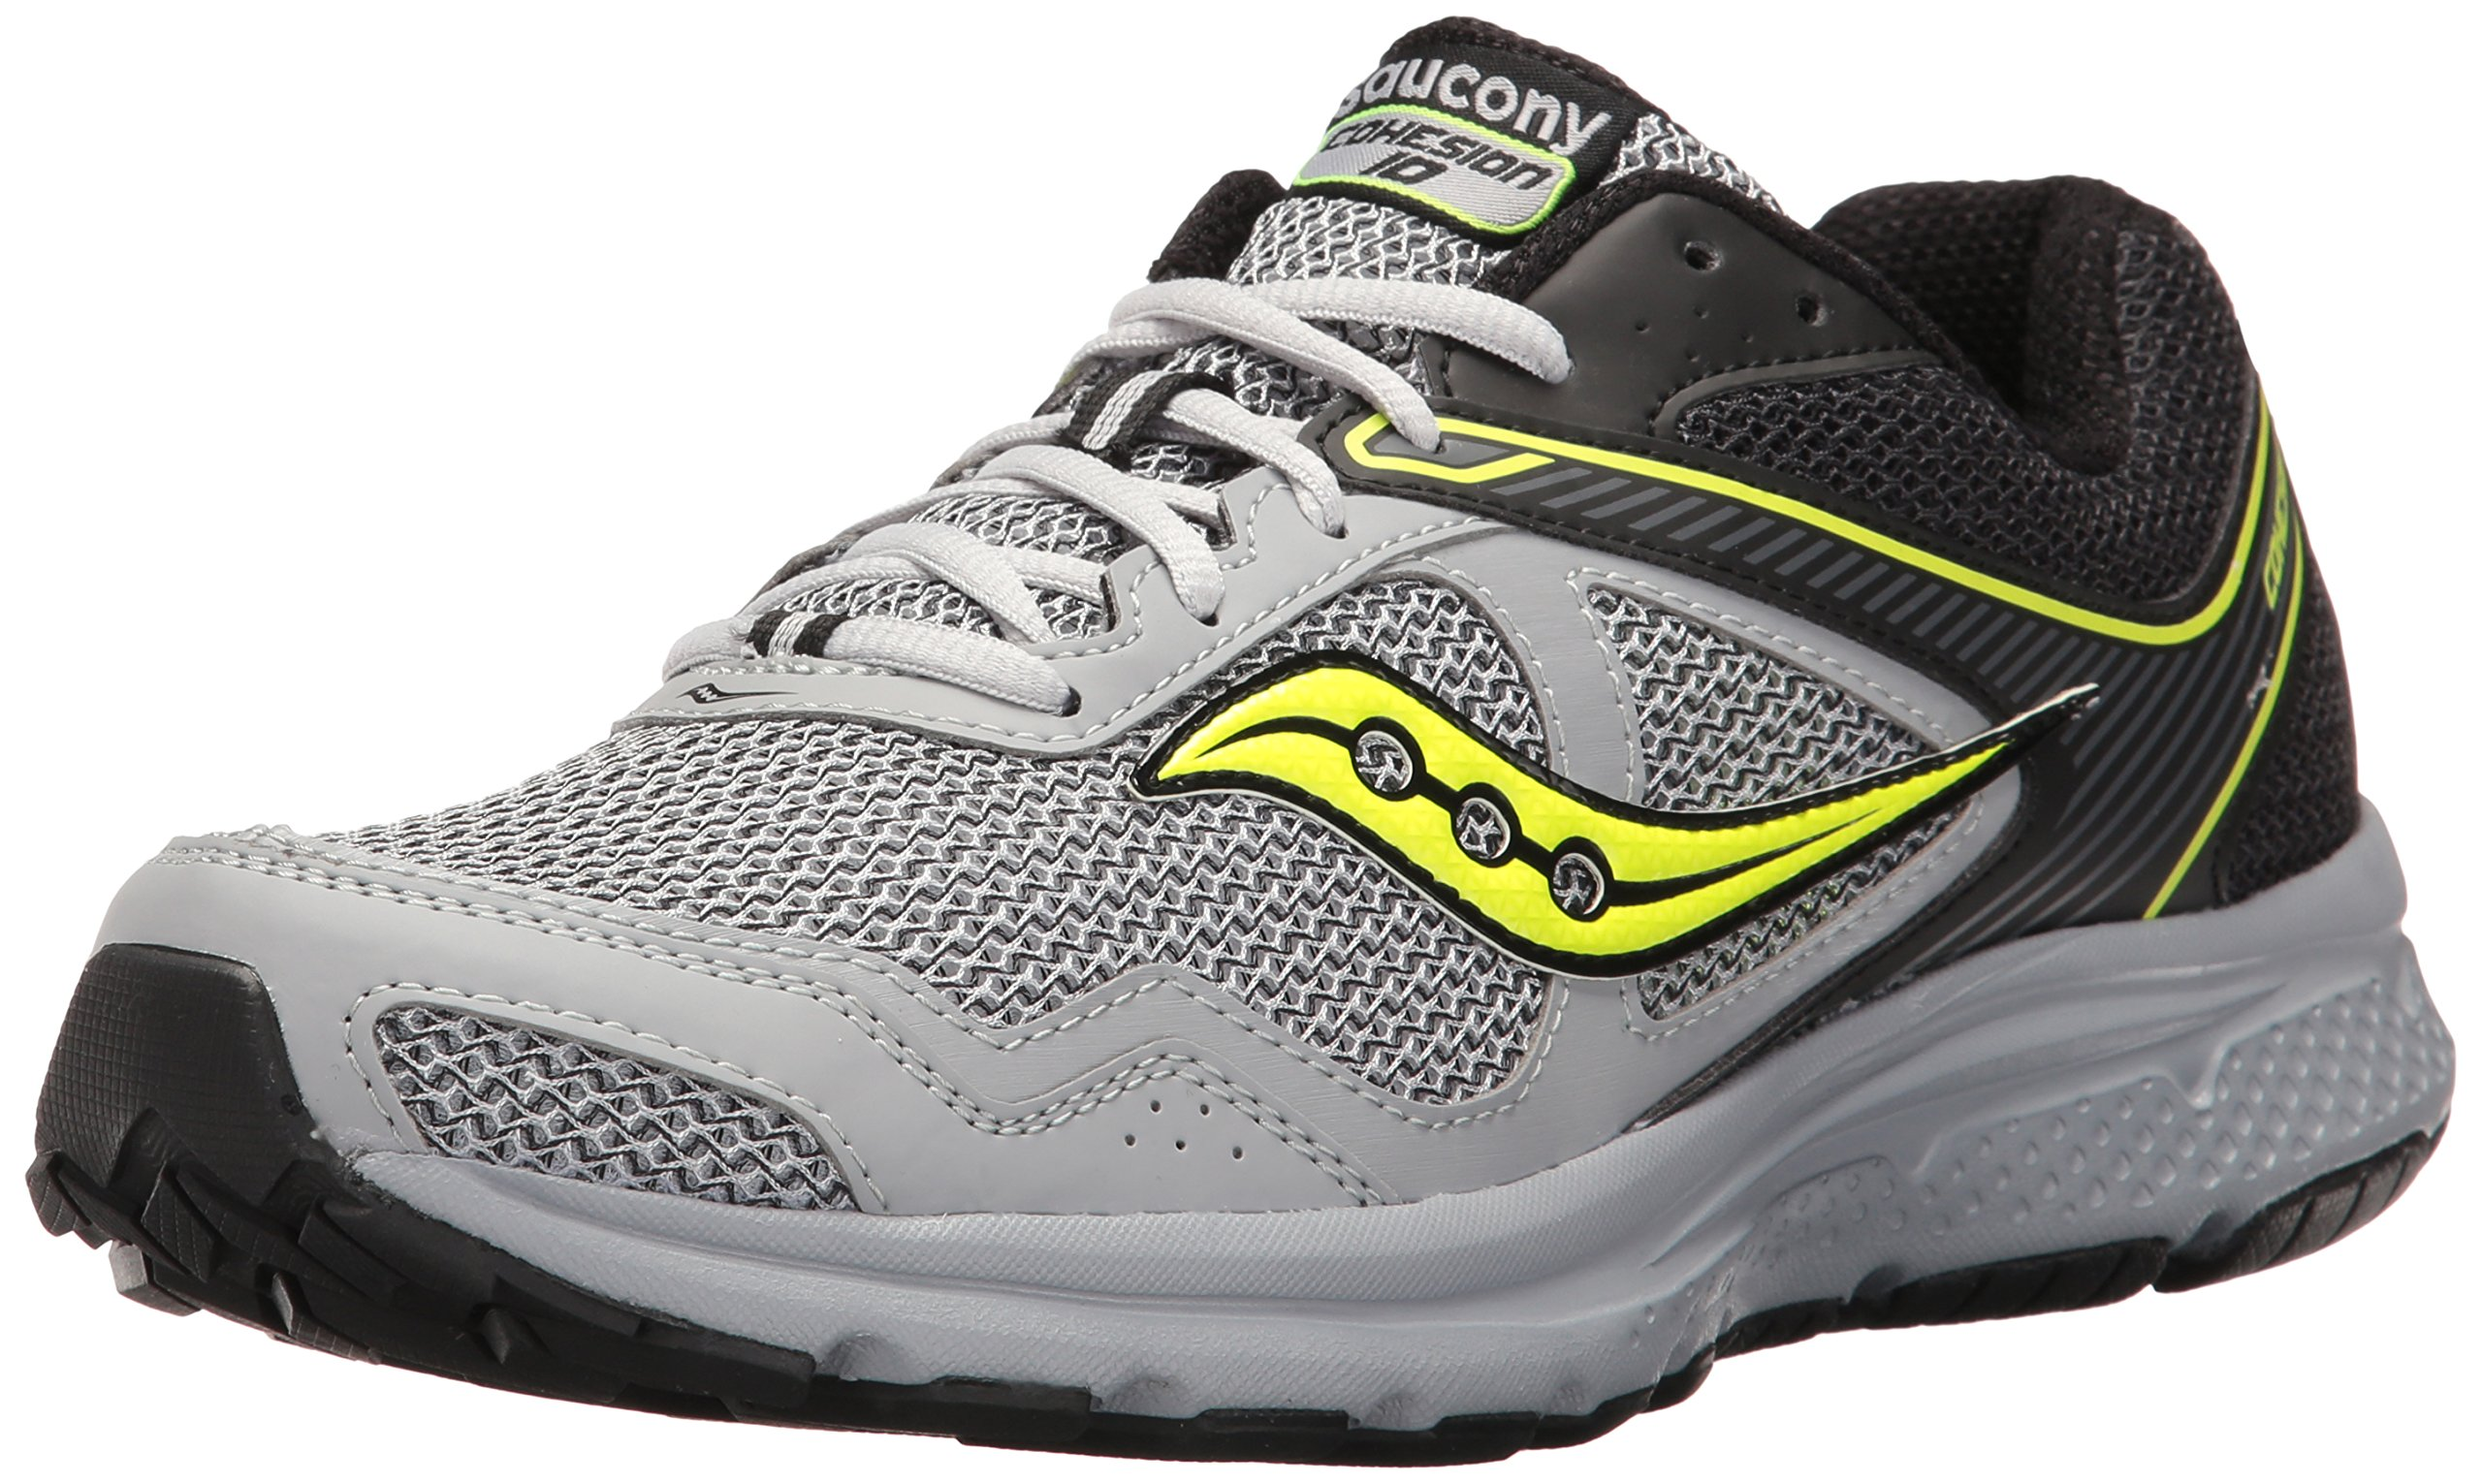 Saucony Men's Cohesion 10 Running Shoe, Black/Grey/Citron, 8 M US